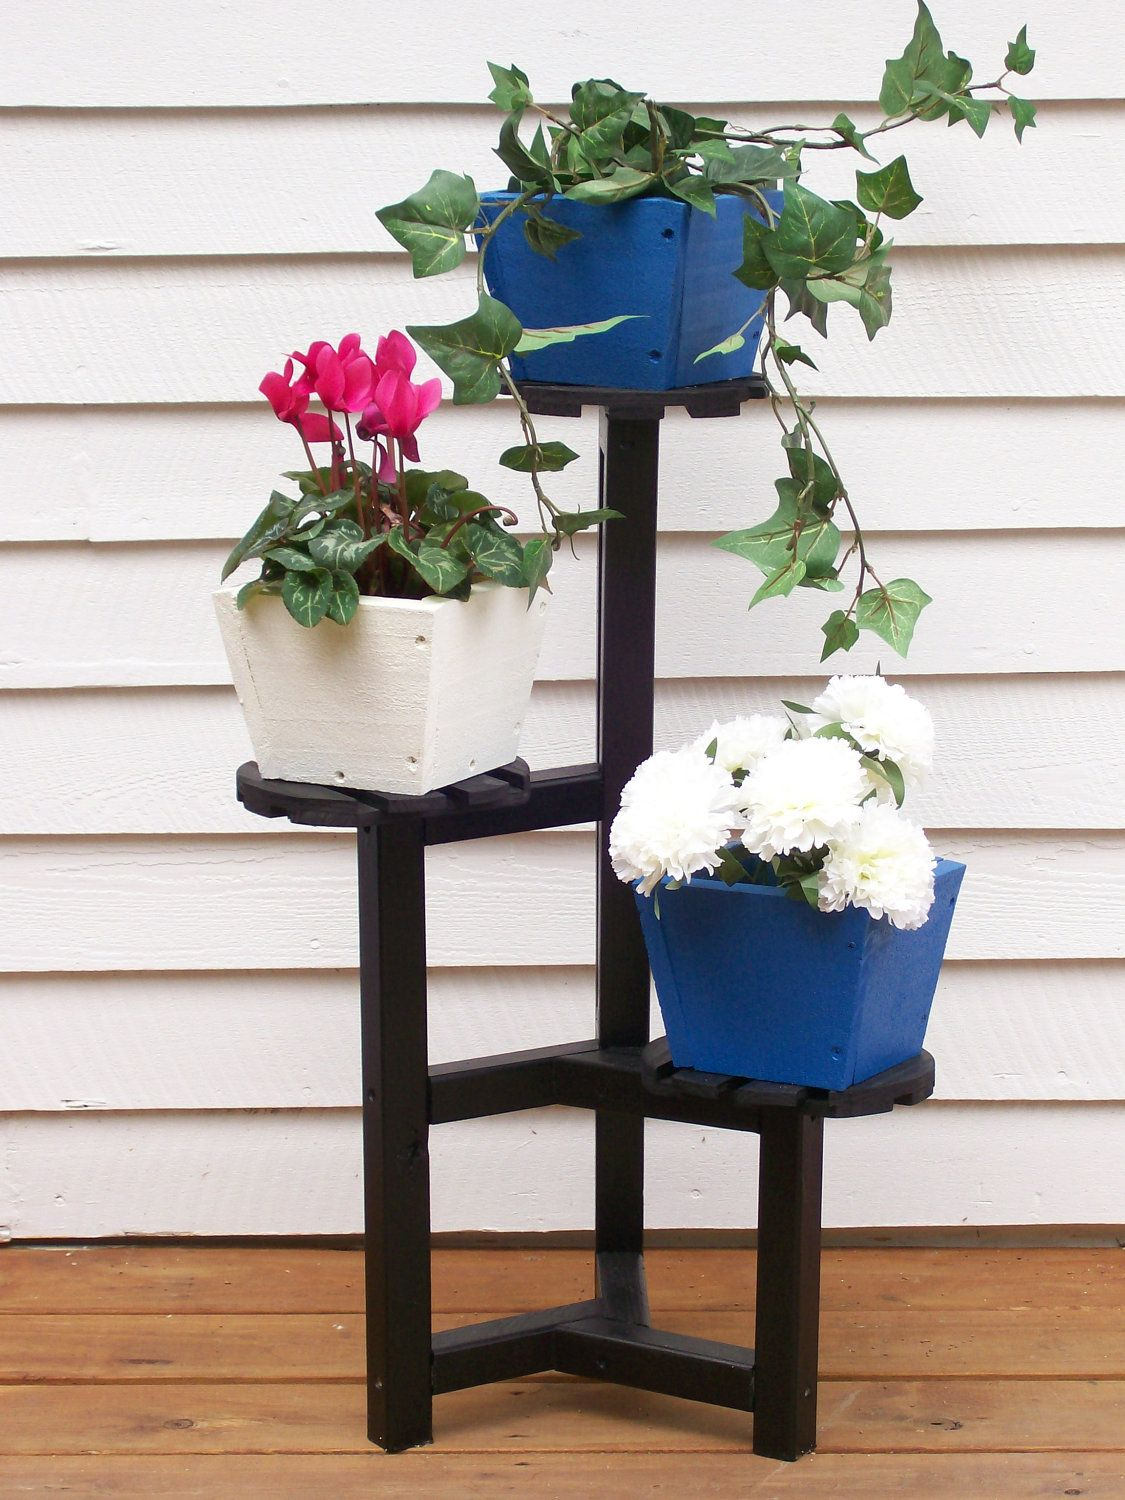 Herb Garden Plant Stands Flower Pot Stand Plant Stand For Indoor Or By